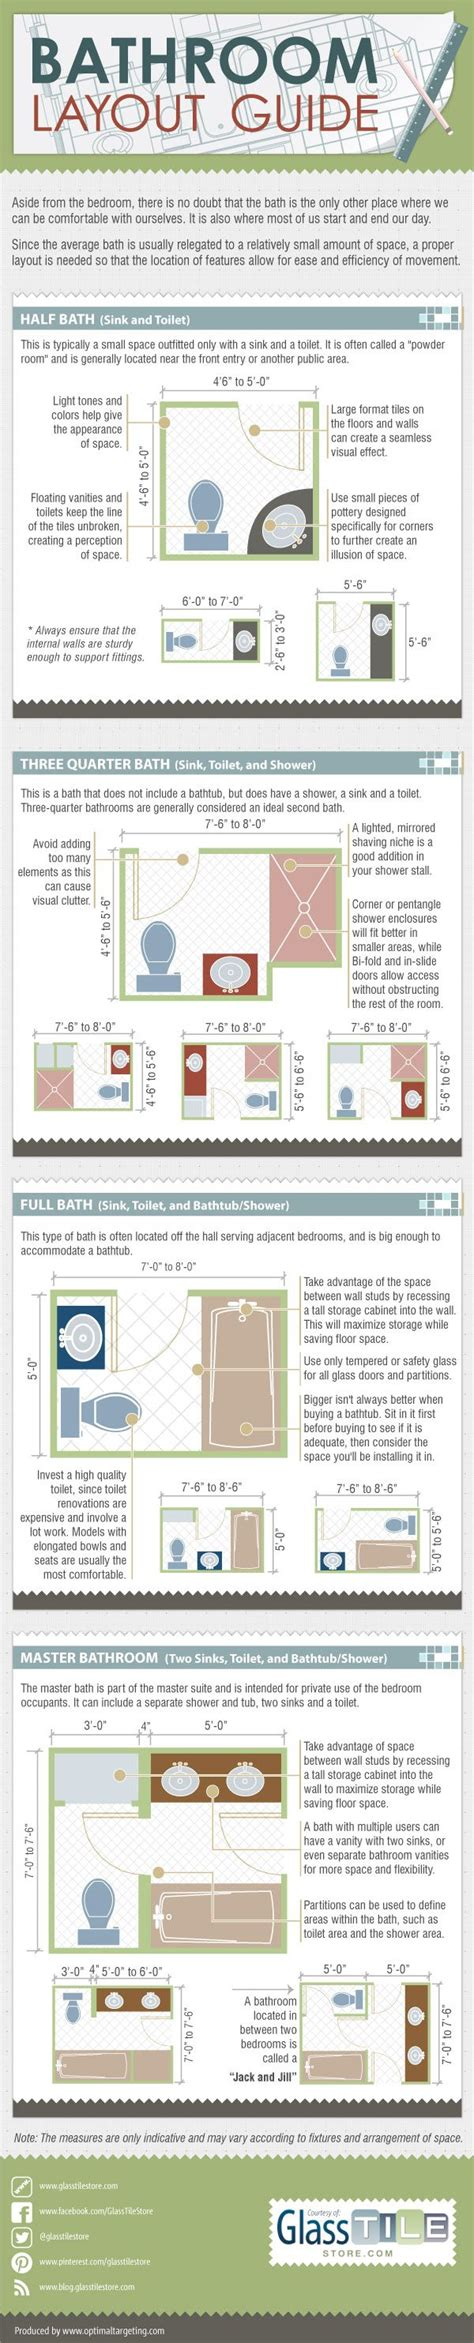 Bathroom Layout Guide | the ultimate guide to bathroom layouts infographic